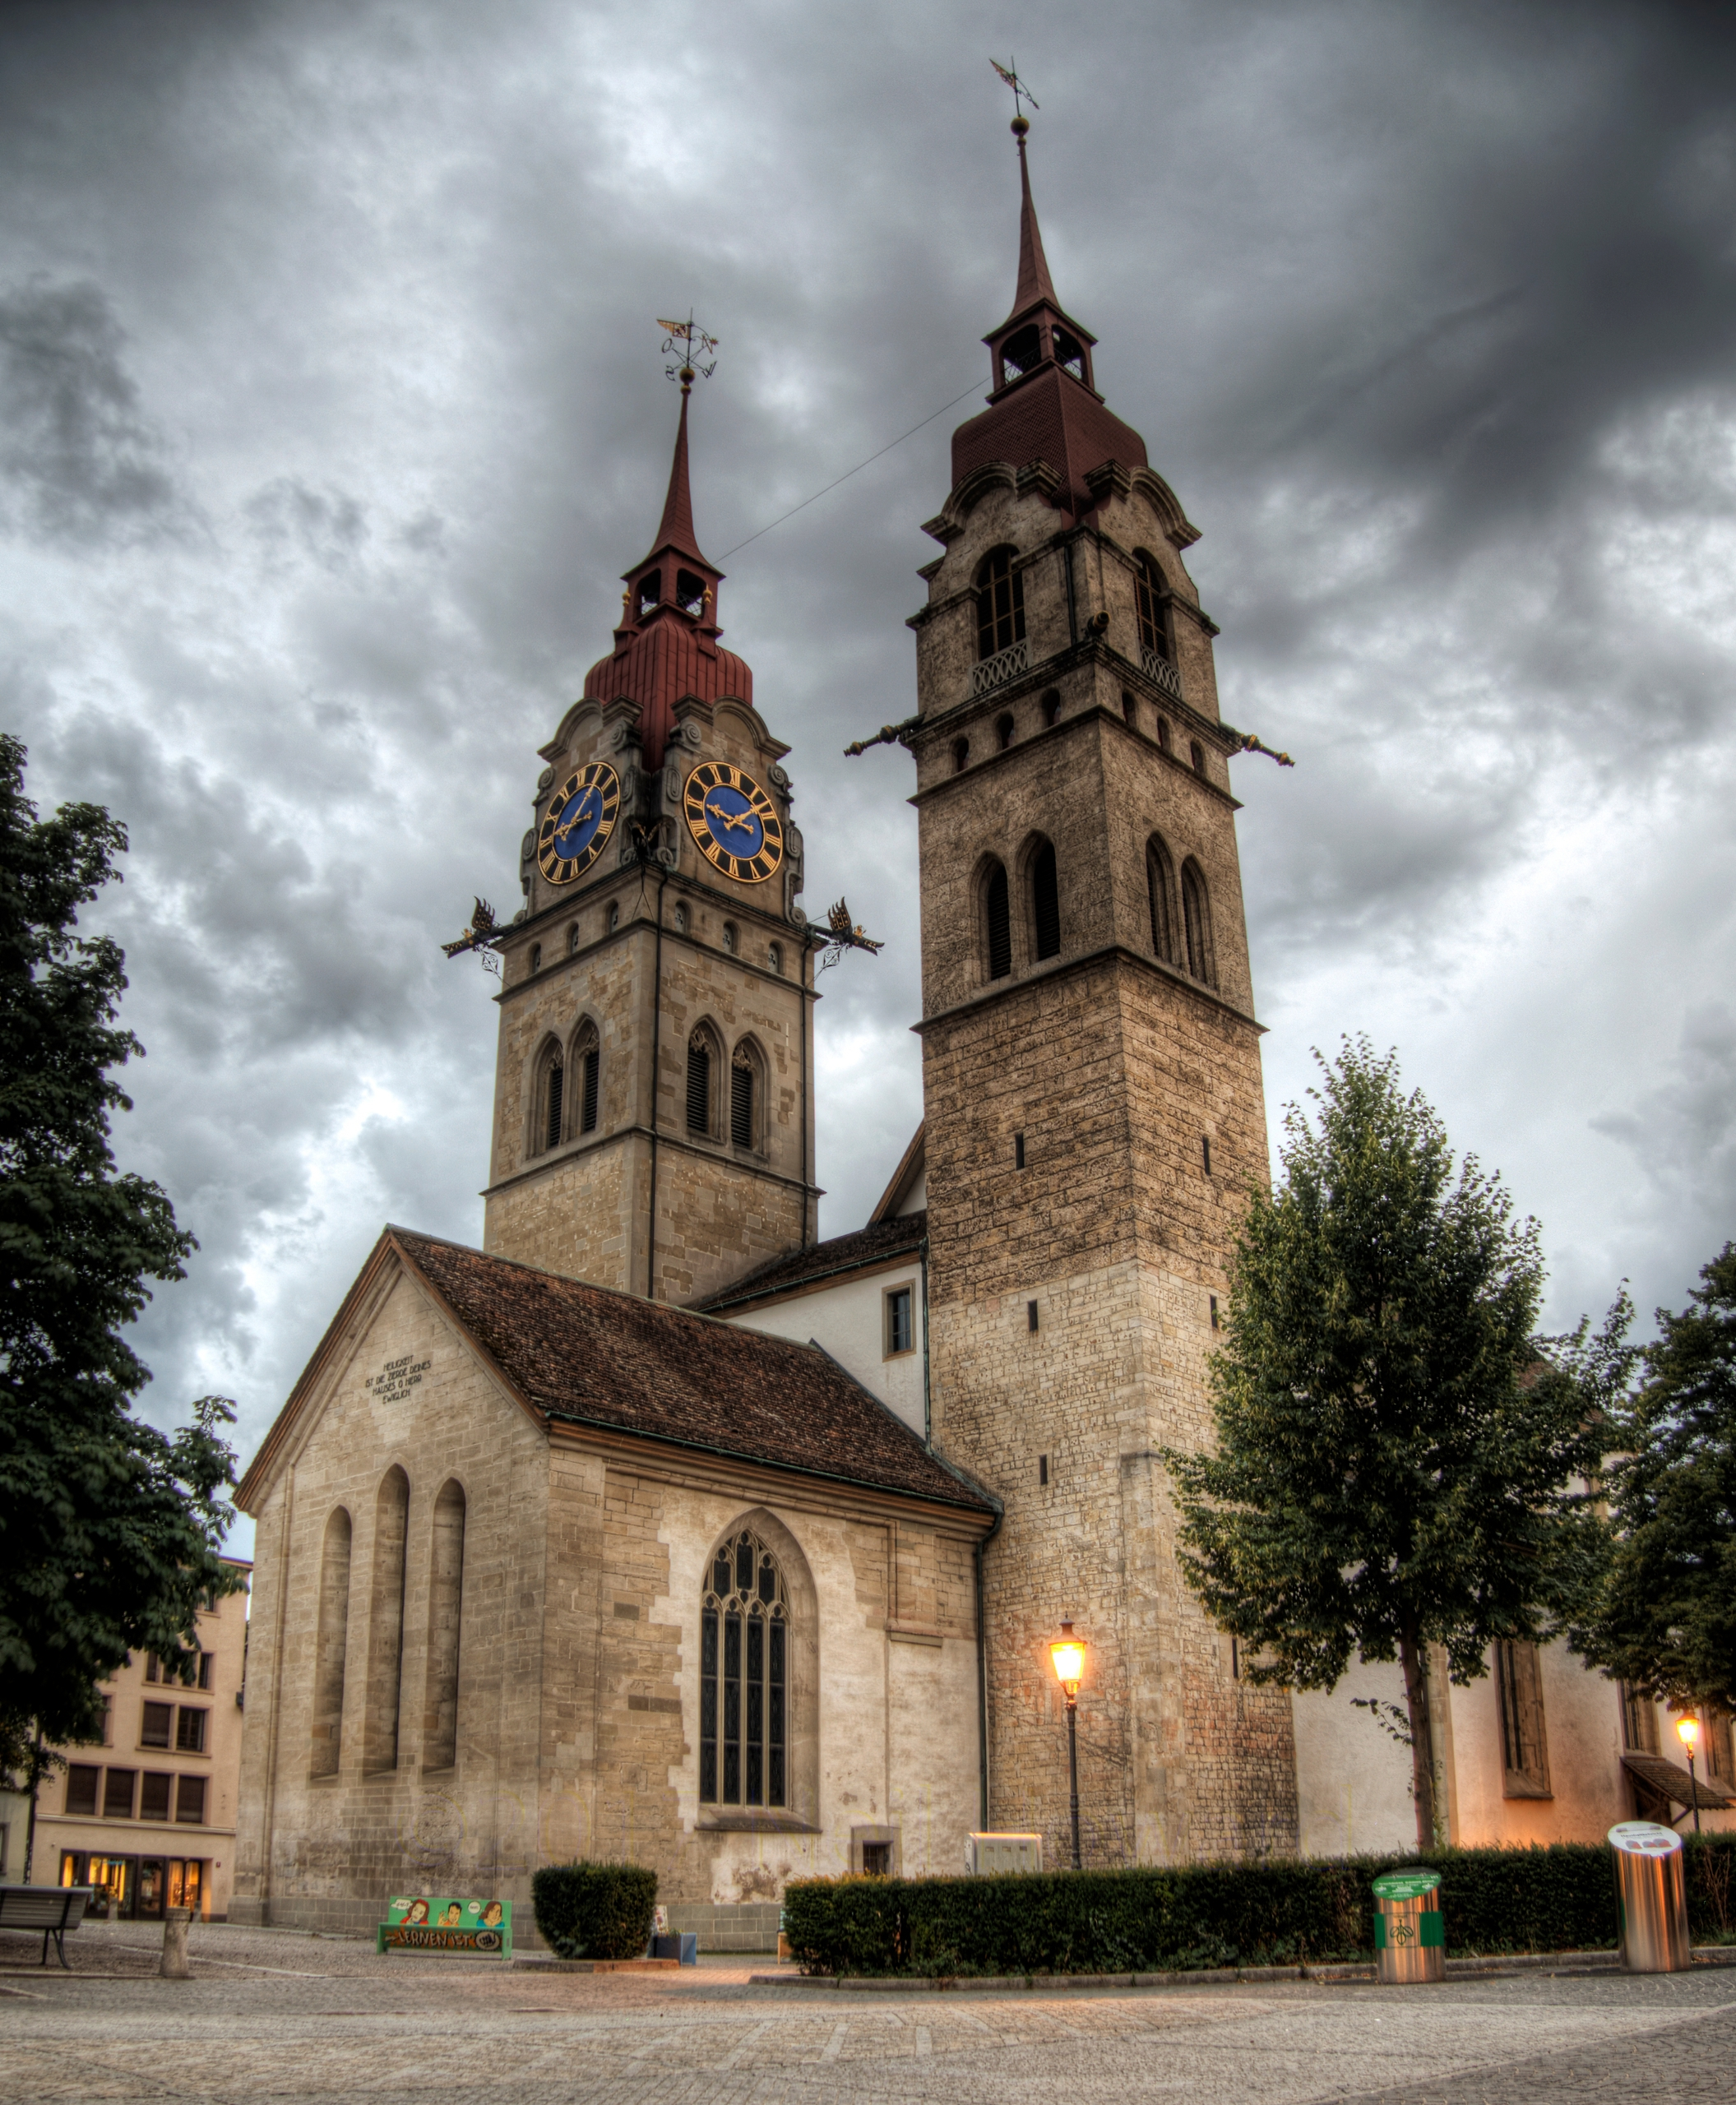 Church Winterthur, Switzerland  - neilhoward | ello